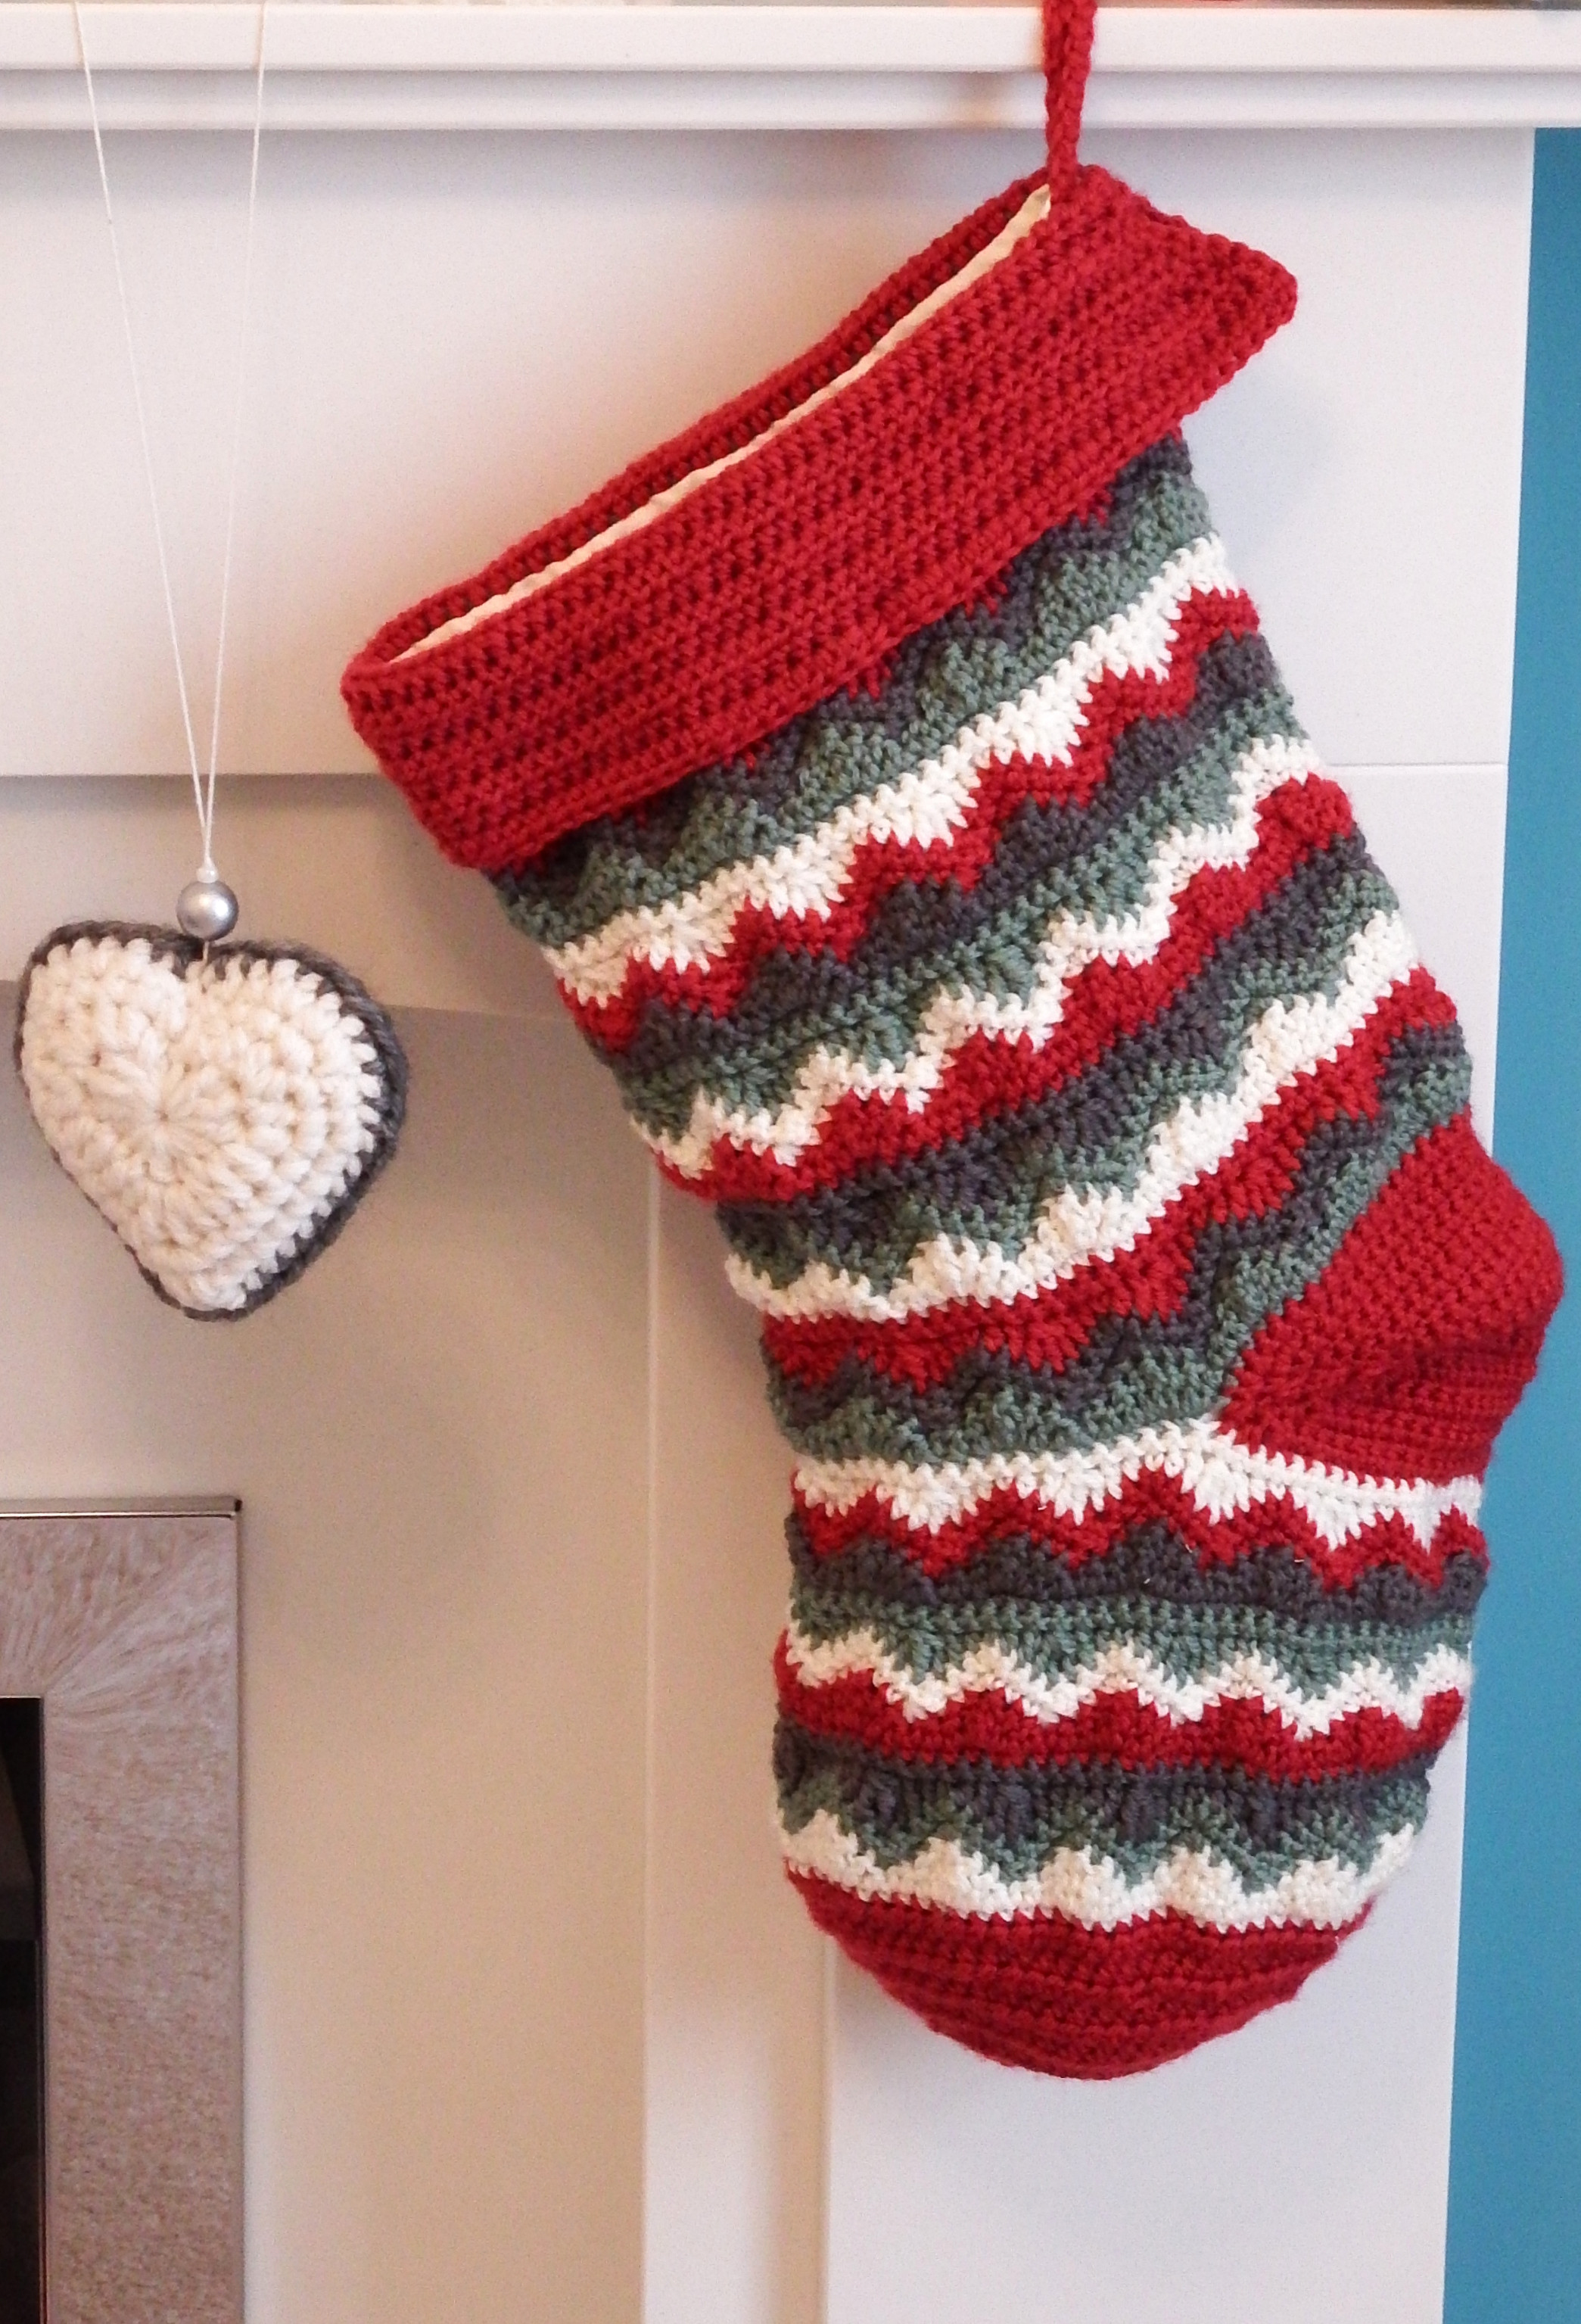 Lovely Christmas Stocking Crochet Pattern for Christmas Stocking Of Fresh 40 All Free Crochet Christmas Stocking Patterns Patterns Hub Crochet Pattern for Christmas Stocking